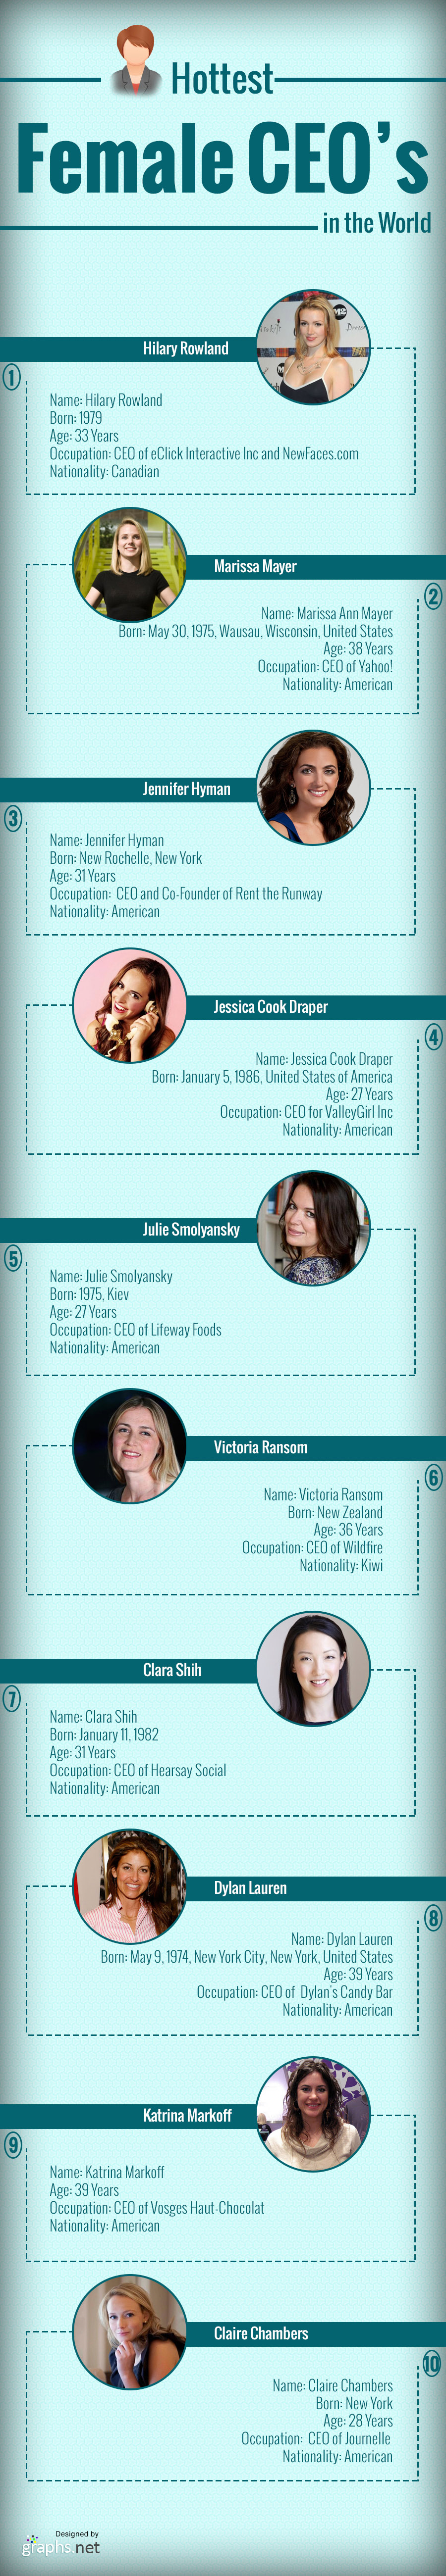 Worlds Hottest Female CEO's